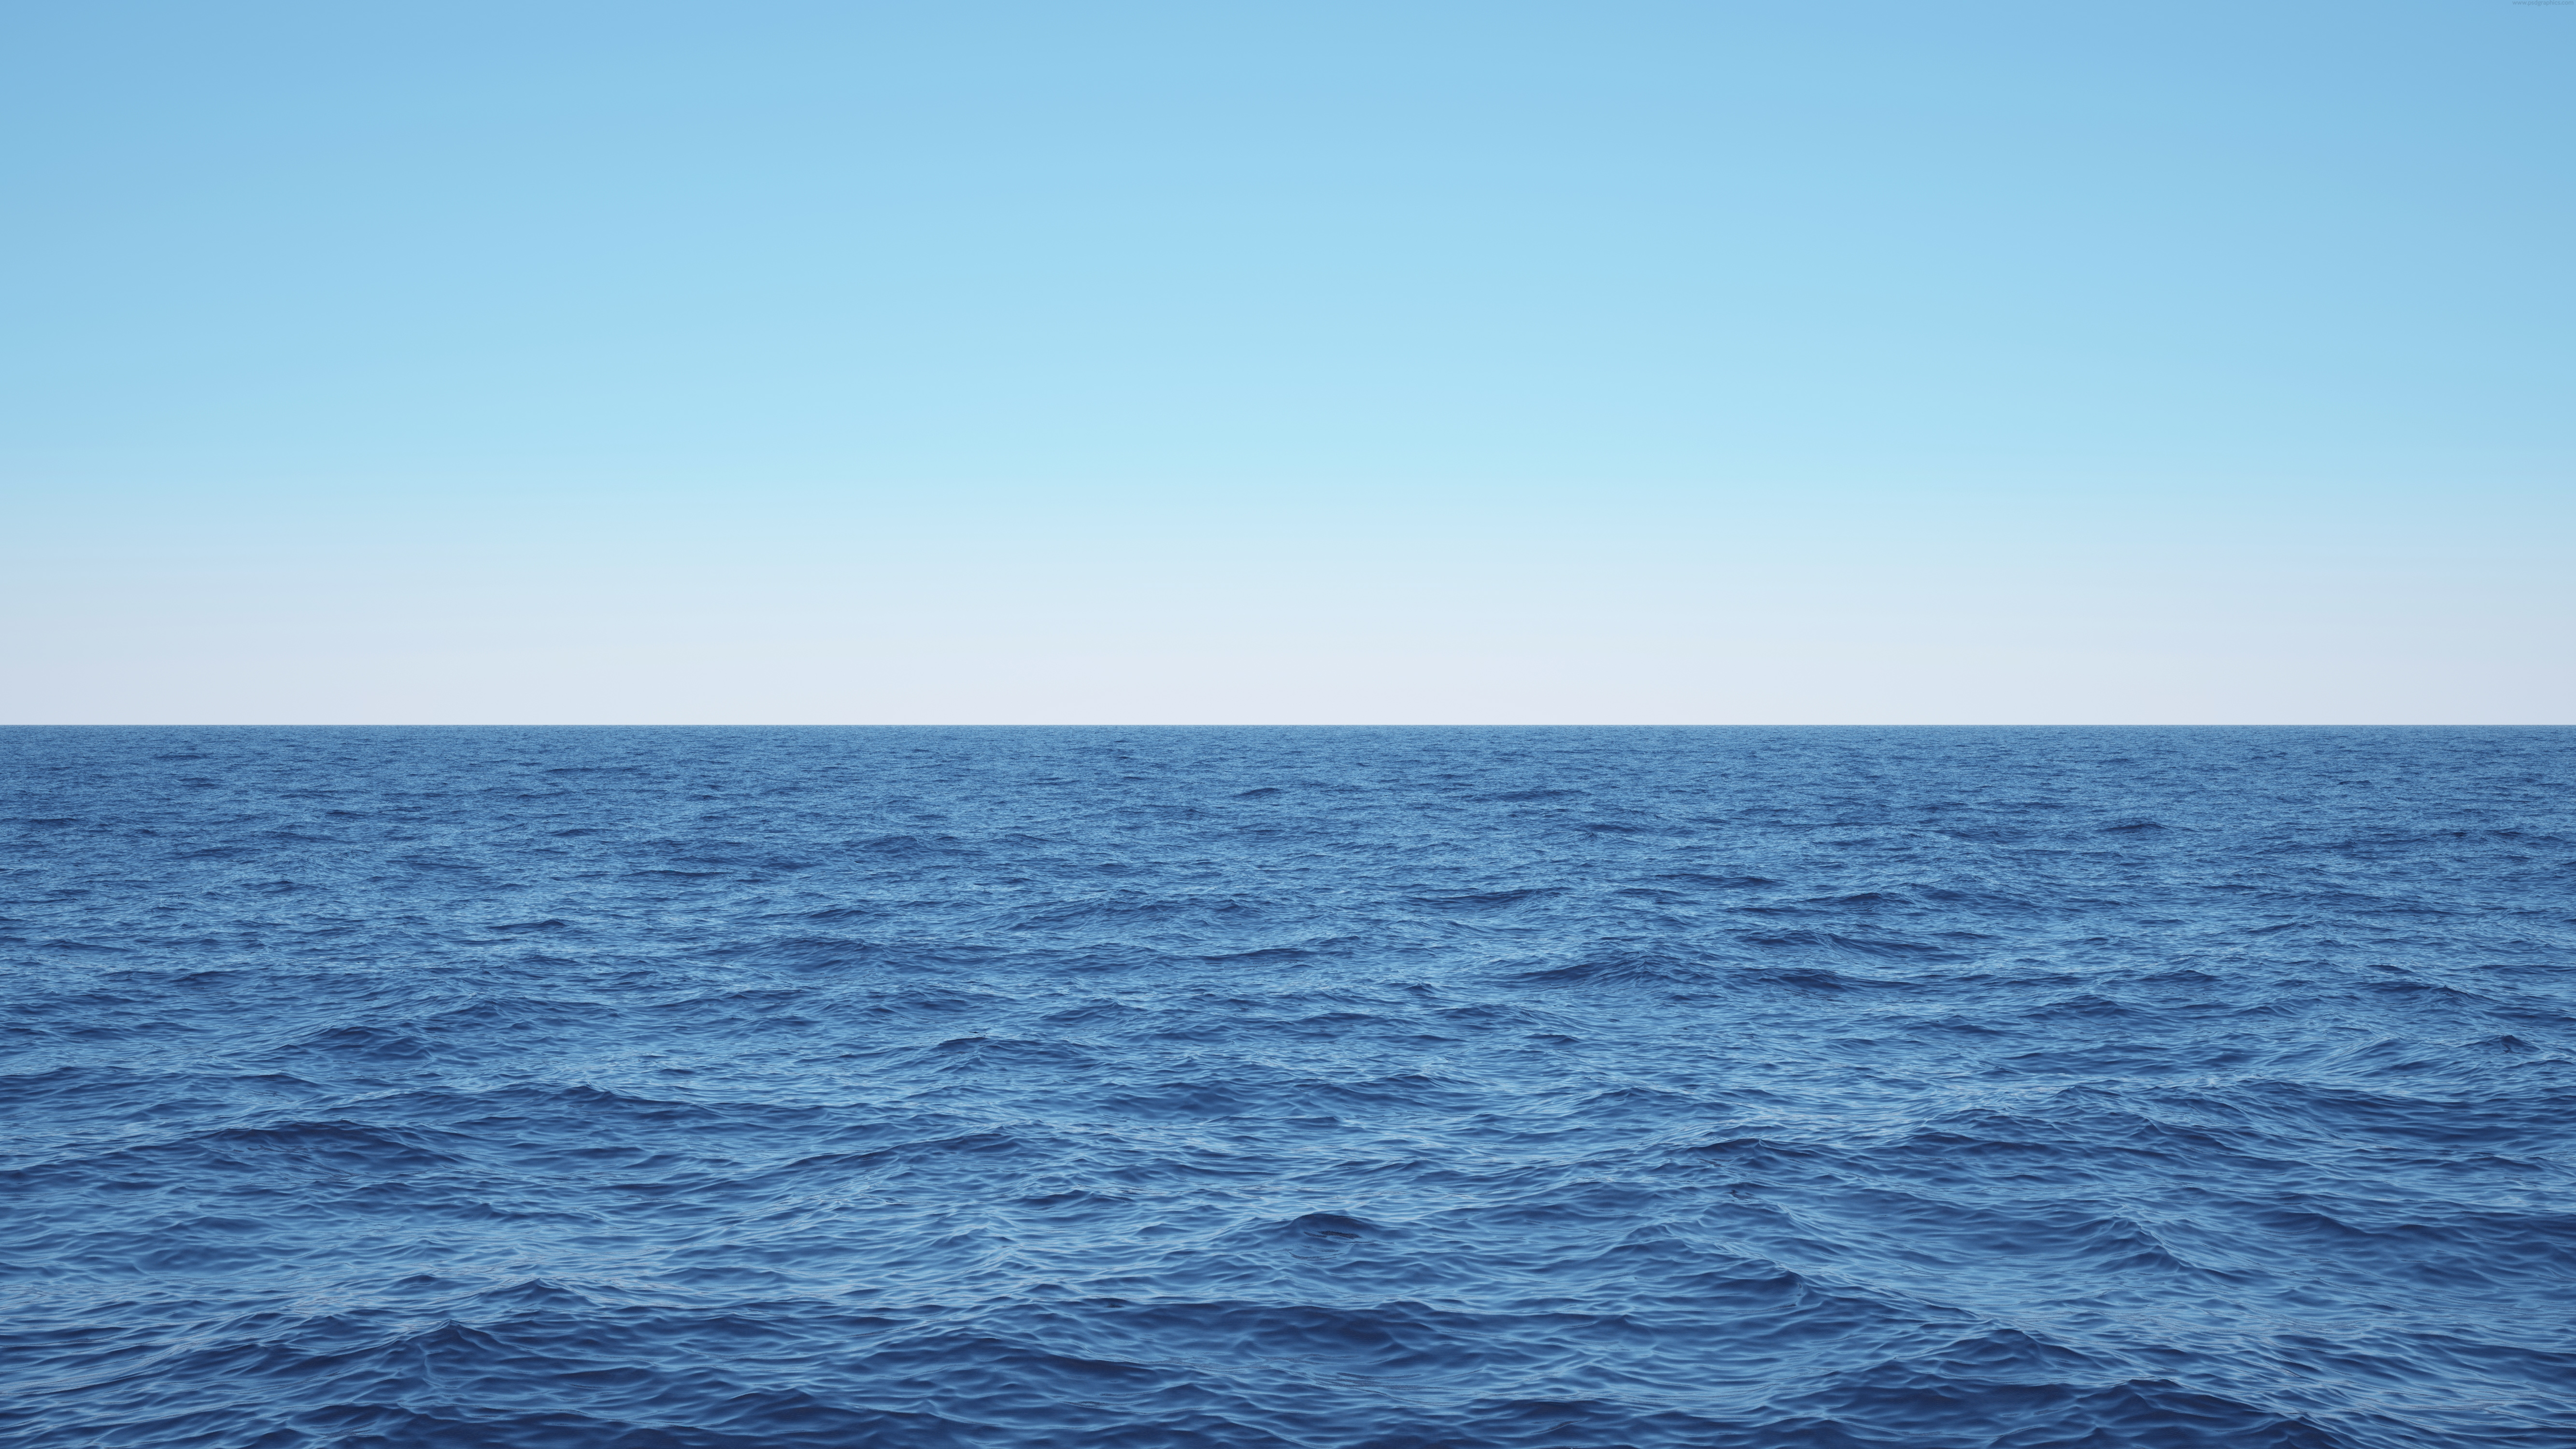 Blue Open Sea Background Psdgraphics